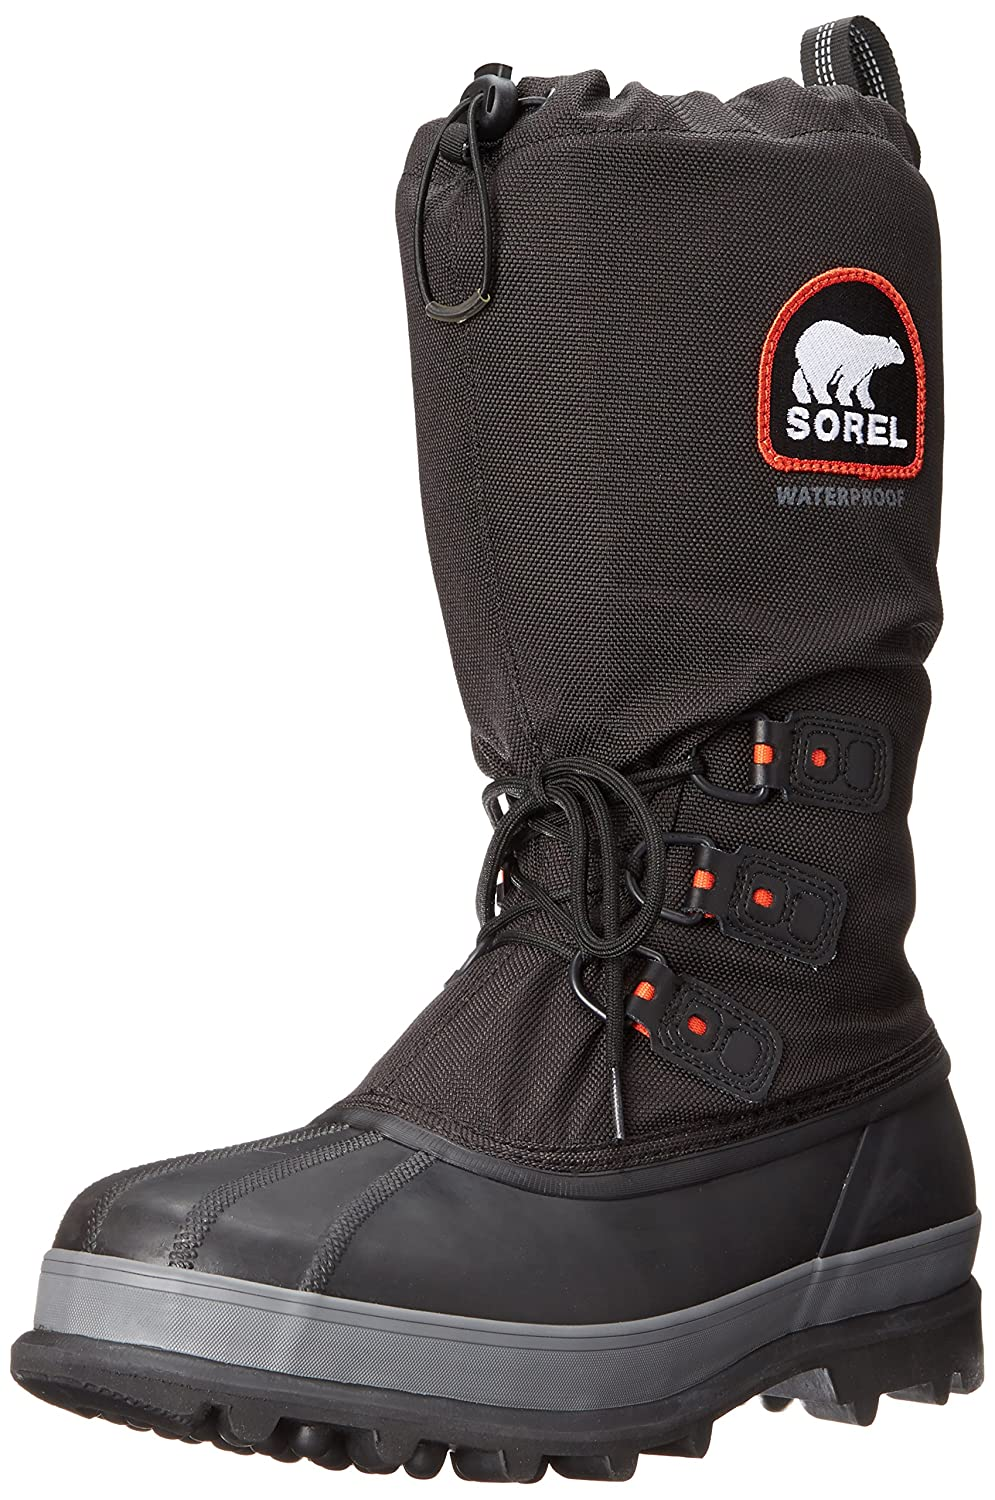 Sorel Men's Bear Extreme Snow Boot BEARTM XT-M